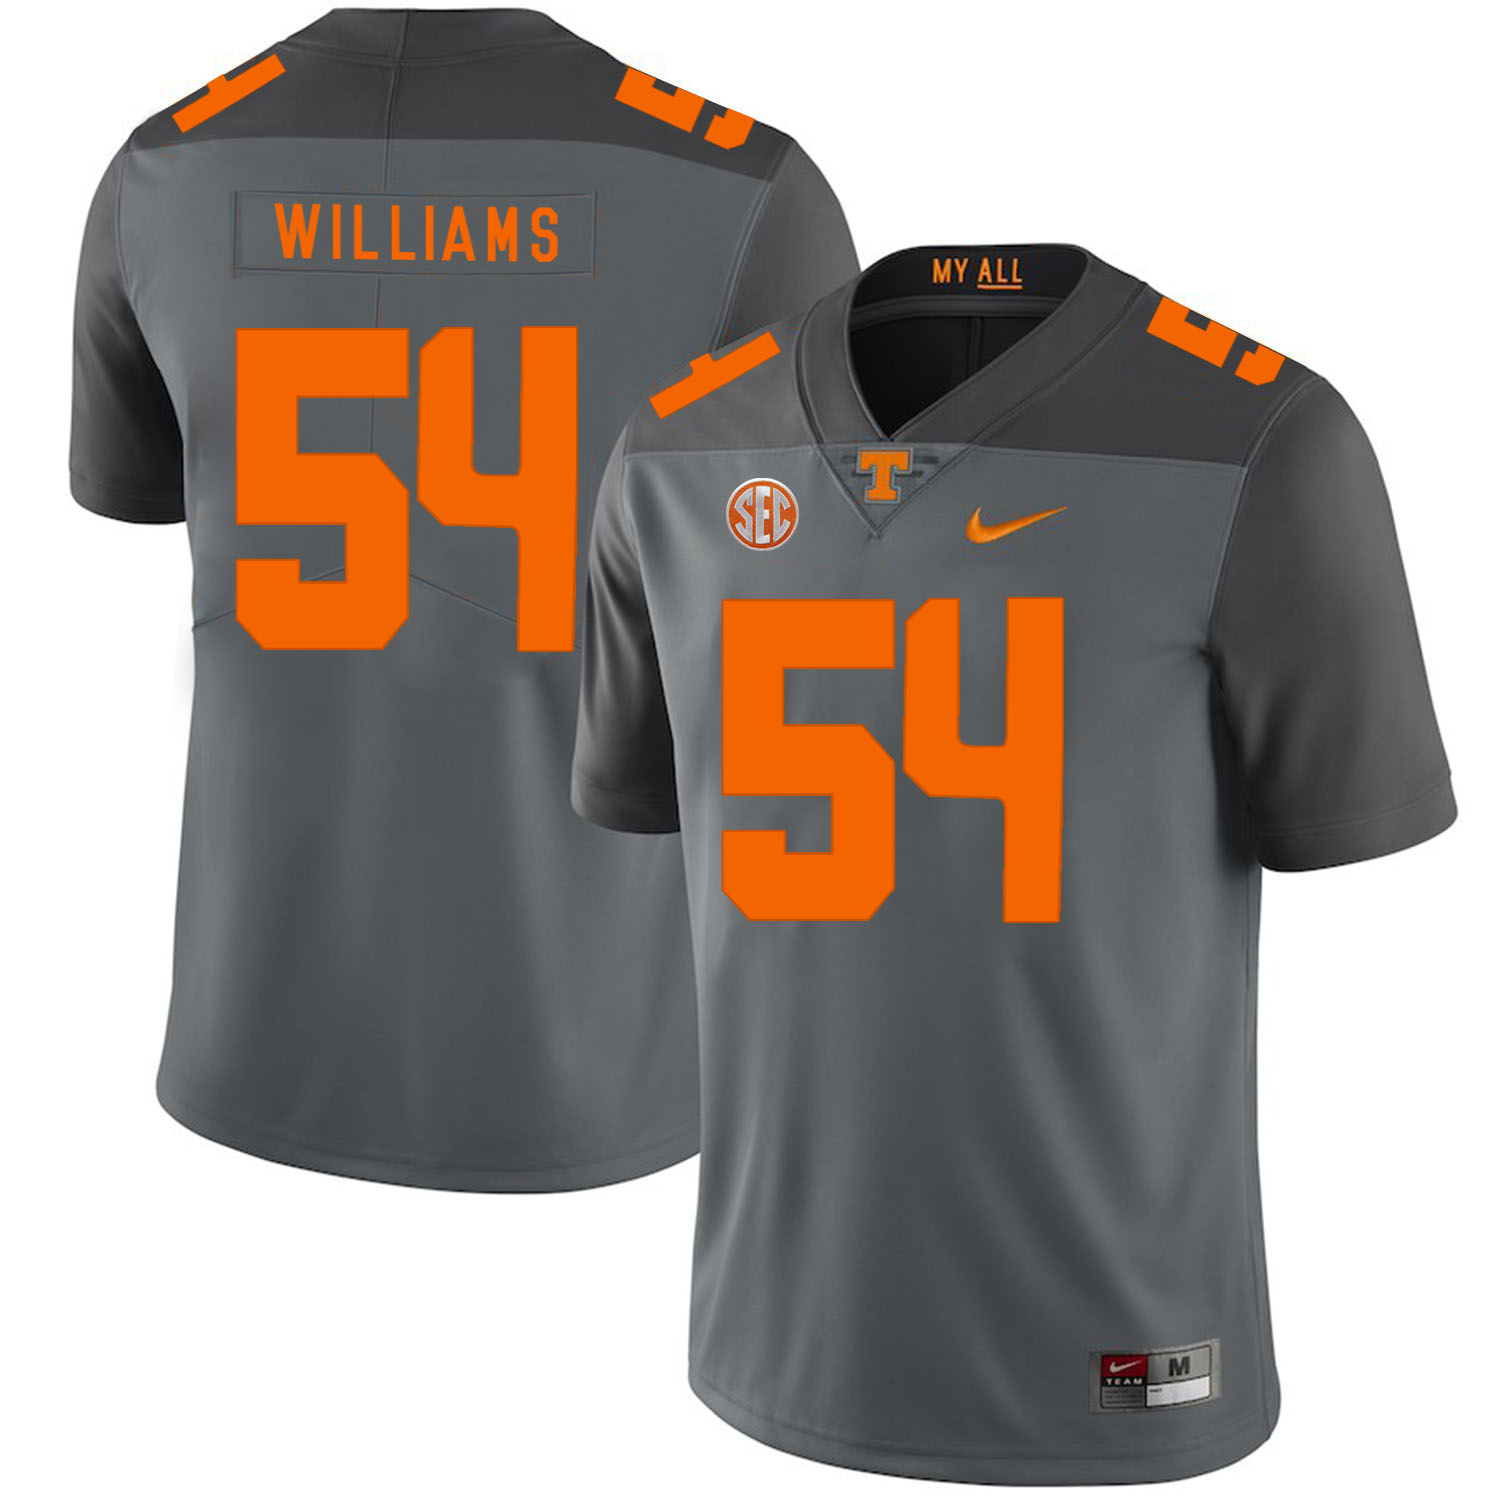 Tennessee Volunteers 54 Jordan Williams Gray Nike College Football Jersey